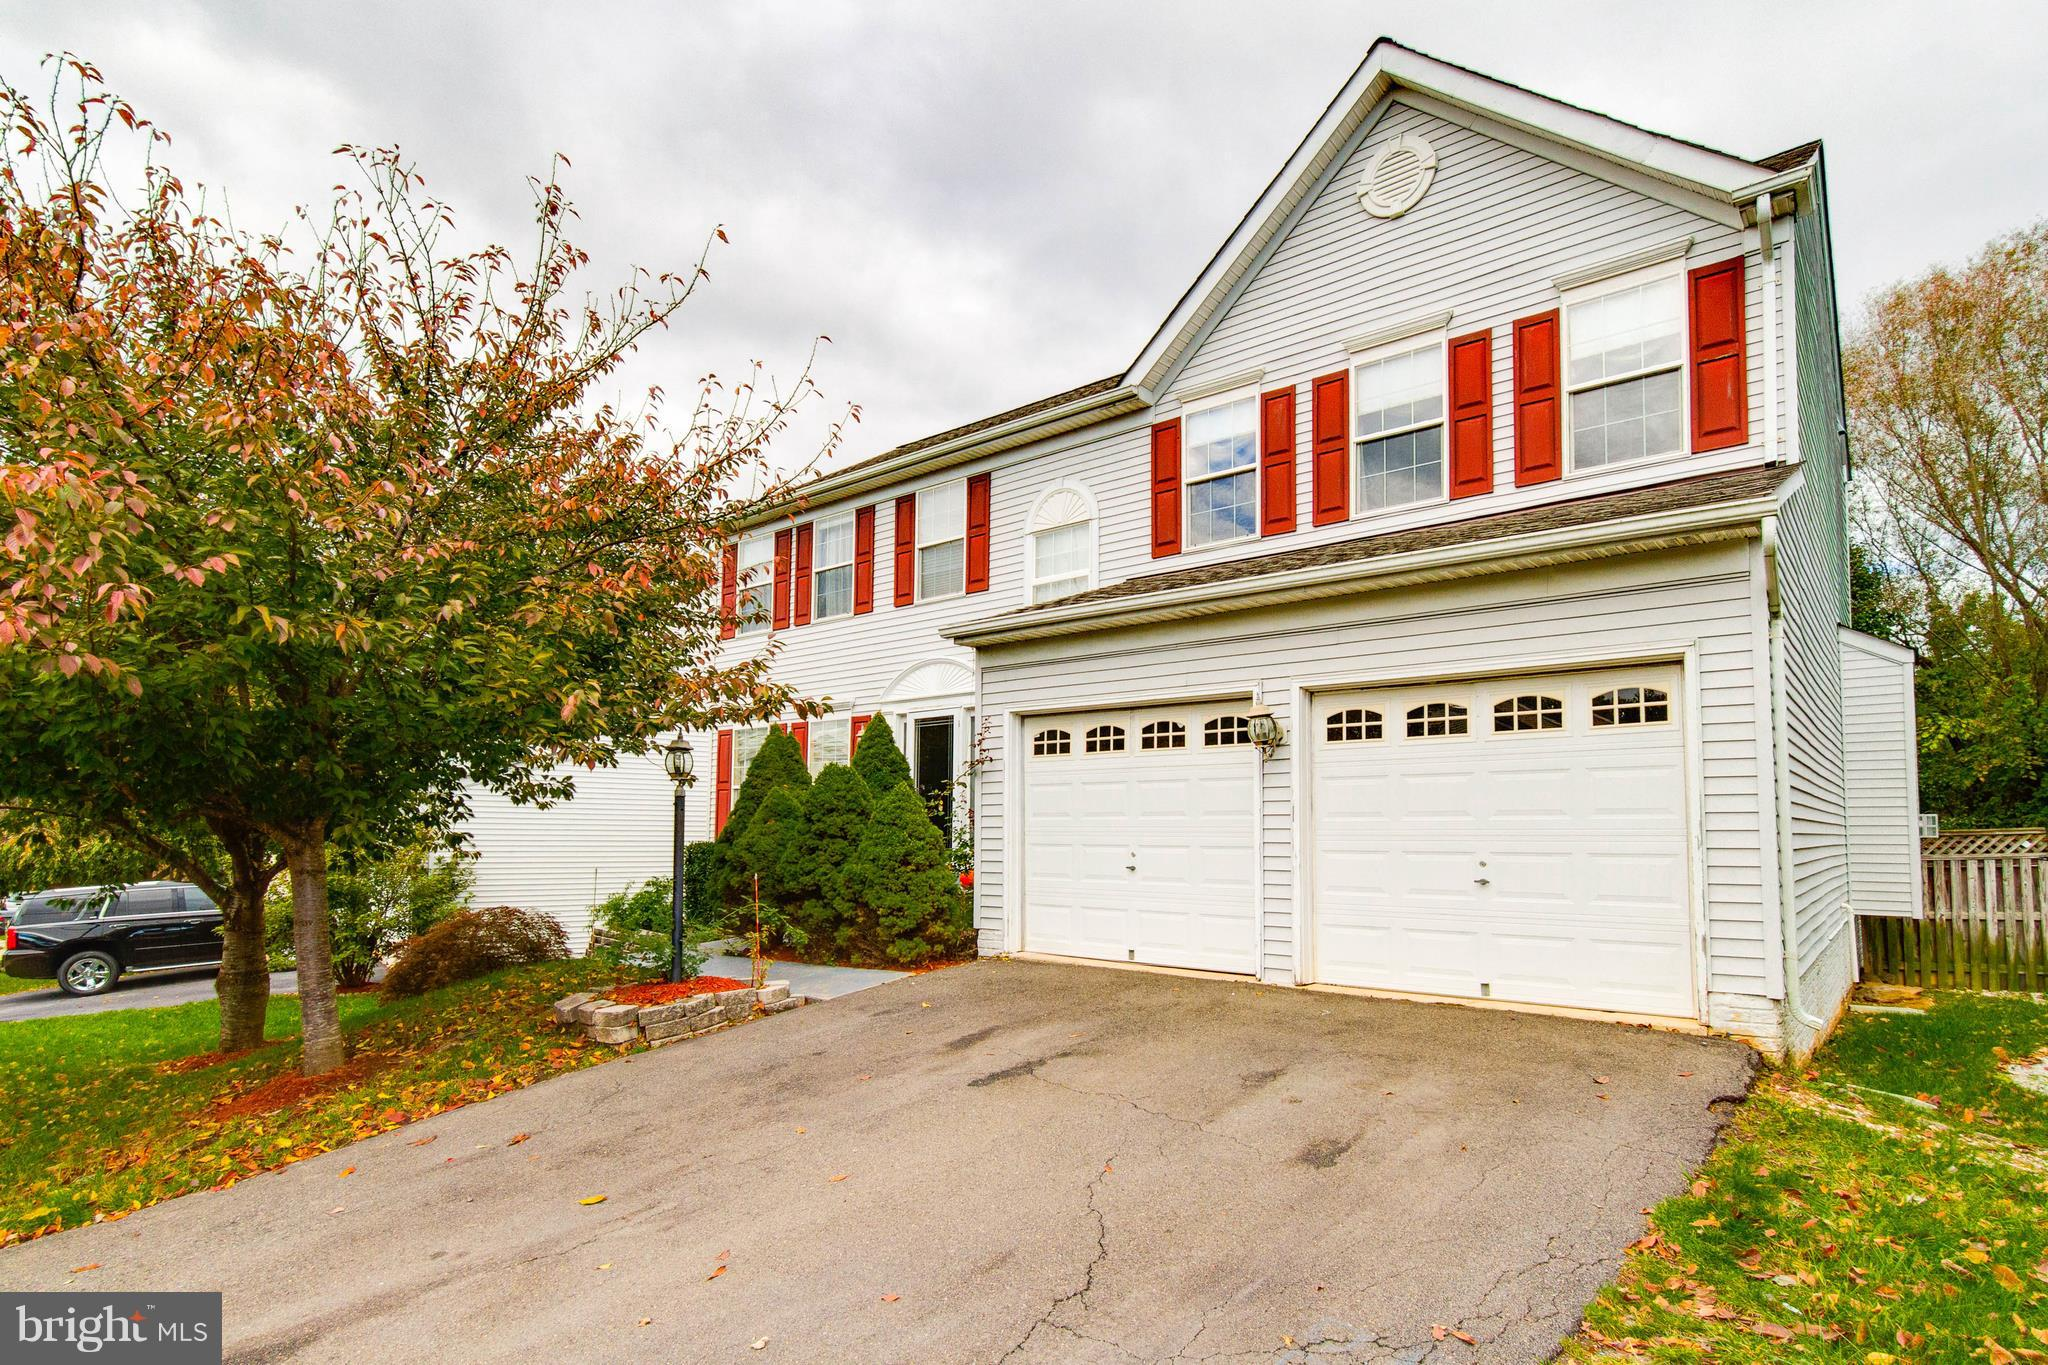 Perfect for anyone! Living in this generously spacious 3 lvl house should be easy! 2,152 sqft on a lot of 7,701 sqft featuring 4 beds, 3.5 baths, finished bsmt w/2 bonus rooms priced to sell quickly!Enjoy gatherings in the living area graced by a fireplace and connected to the rear deck in the huge backyardGreat location near shops, dining and more. Very convenient to major roads and highways